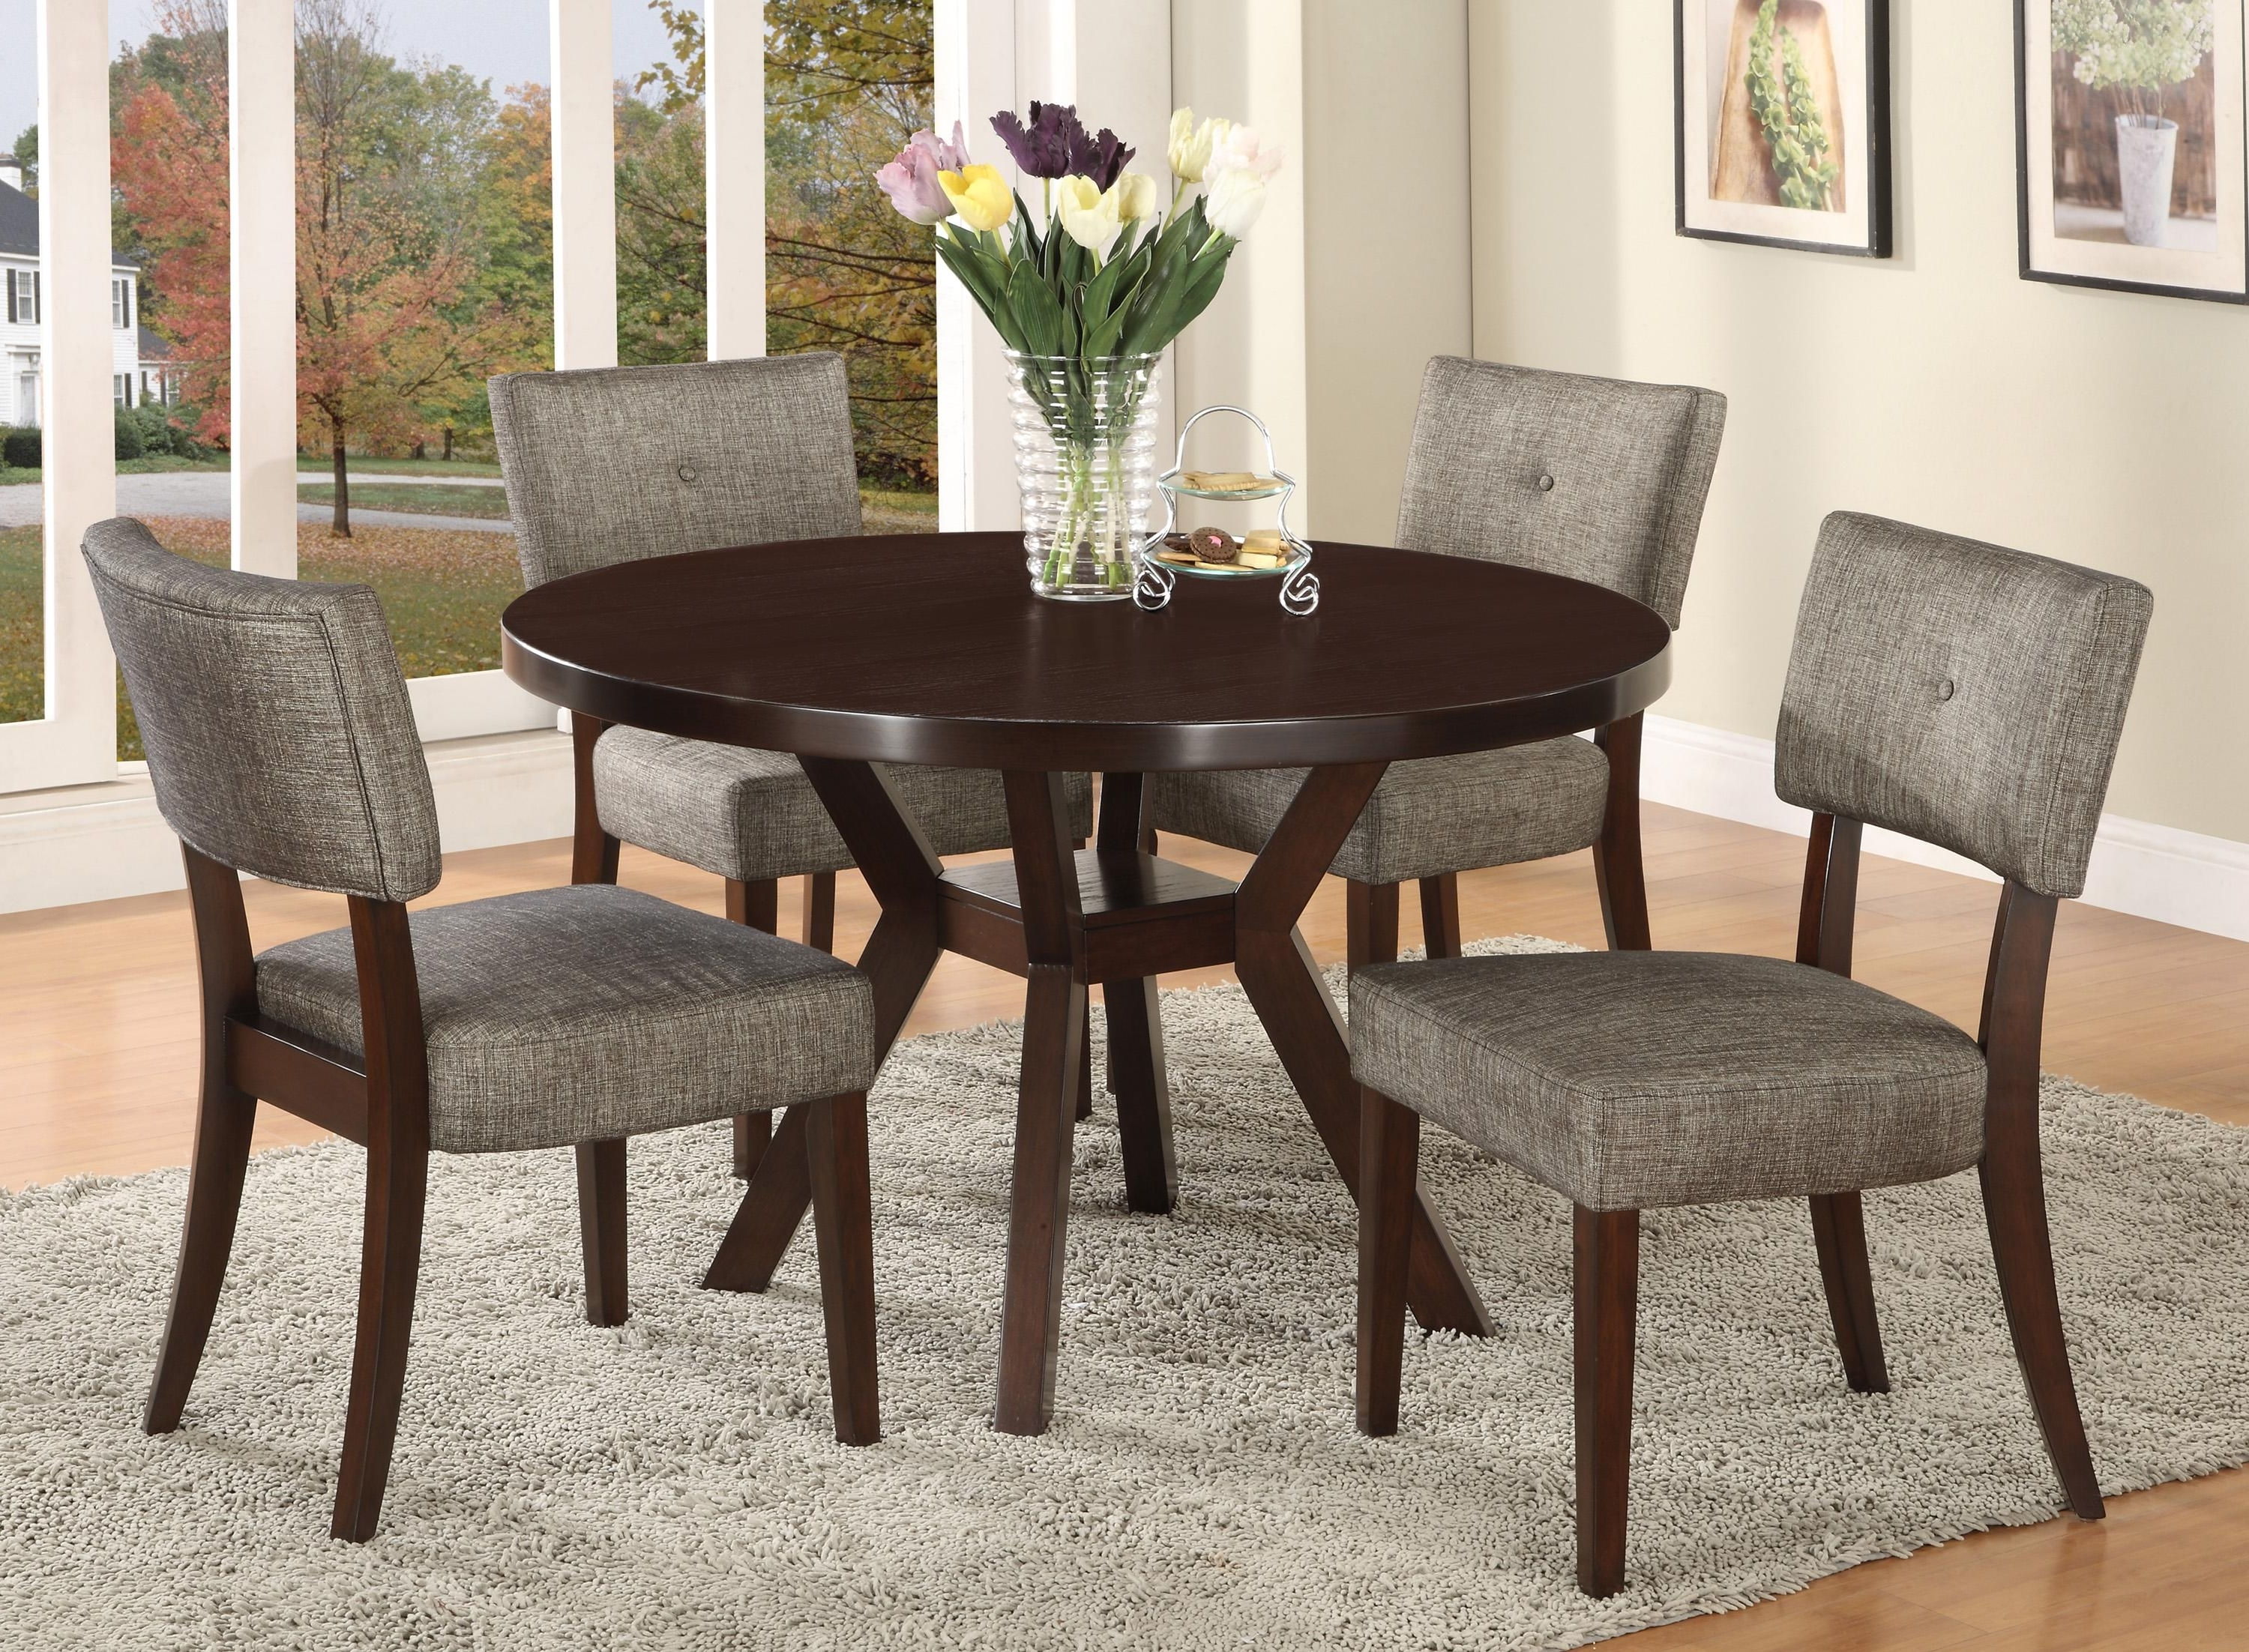 Wayside Regarding Famous Valencia 5 Piece Round Dining Sets With Uph Seat Side Chairs (View 23 of 25)